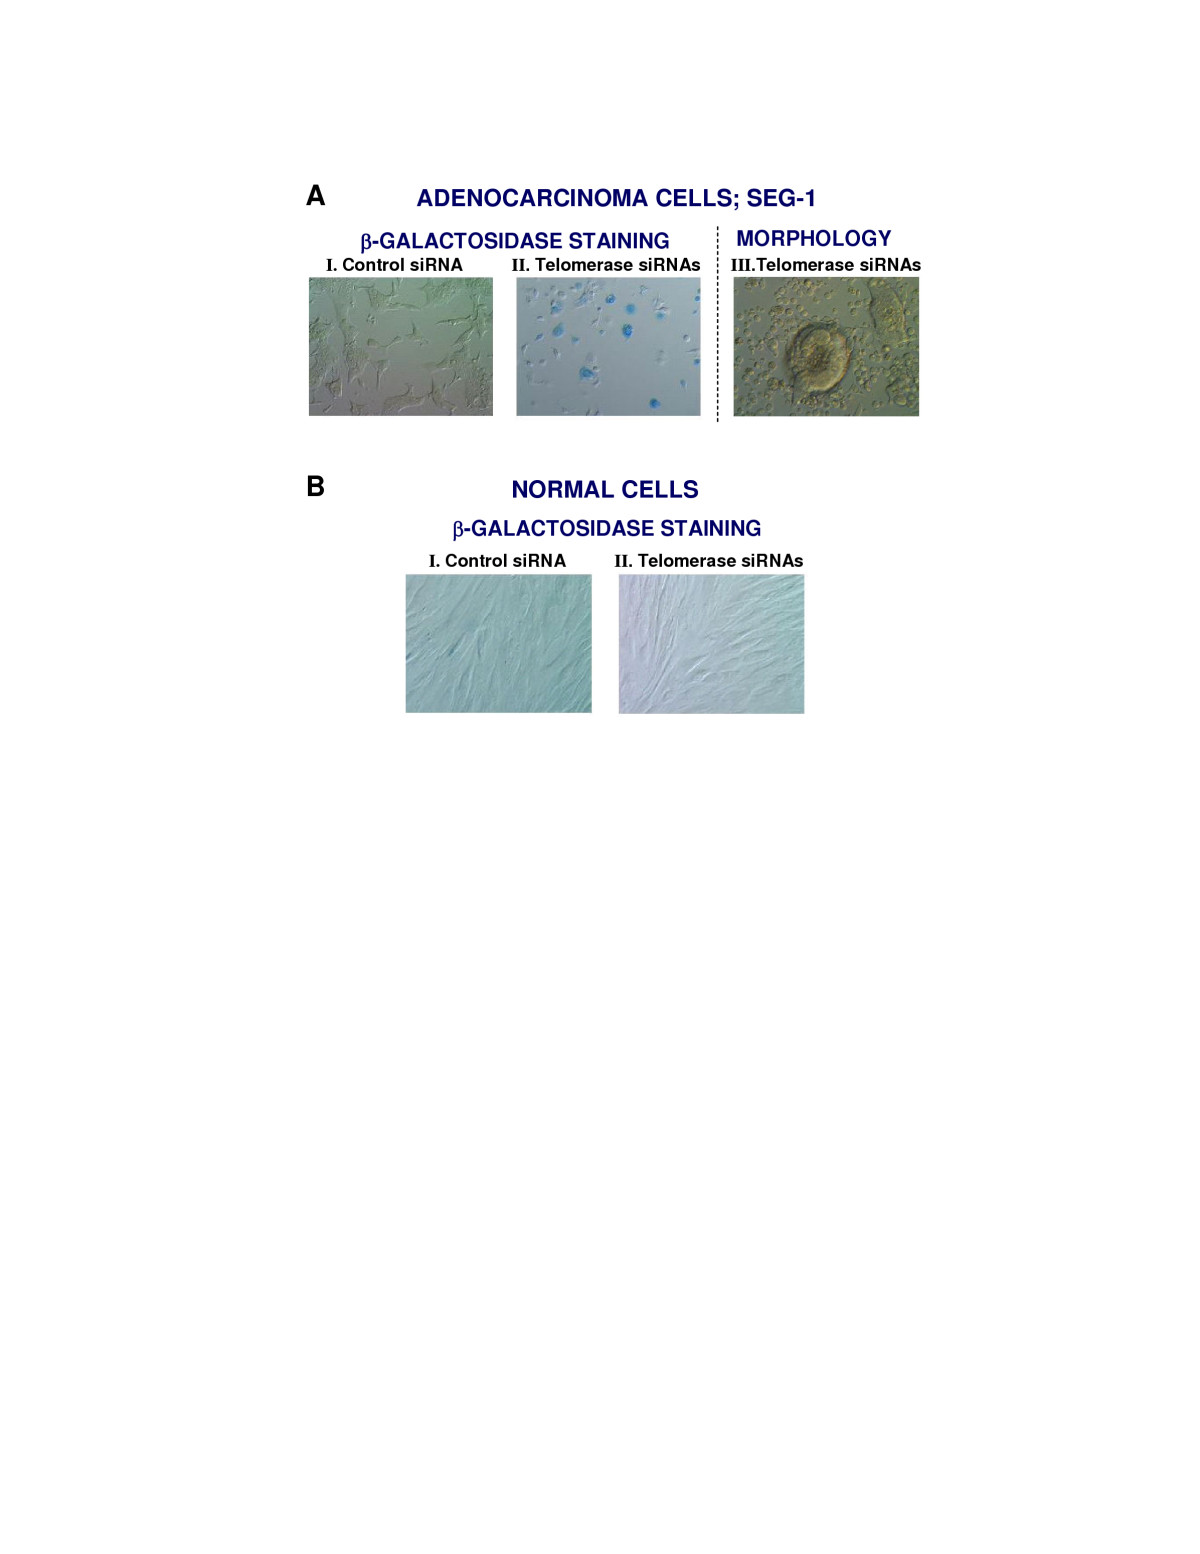 http://static-content.springer.com/image/art%3A10.1186%2F1476-4598-4-24/MediaObjects/12943_2005_Article_113_Fig4_HTML.jpg